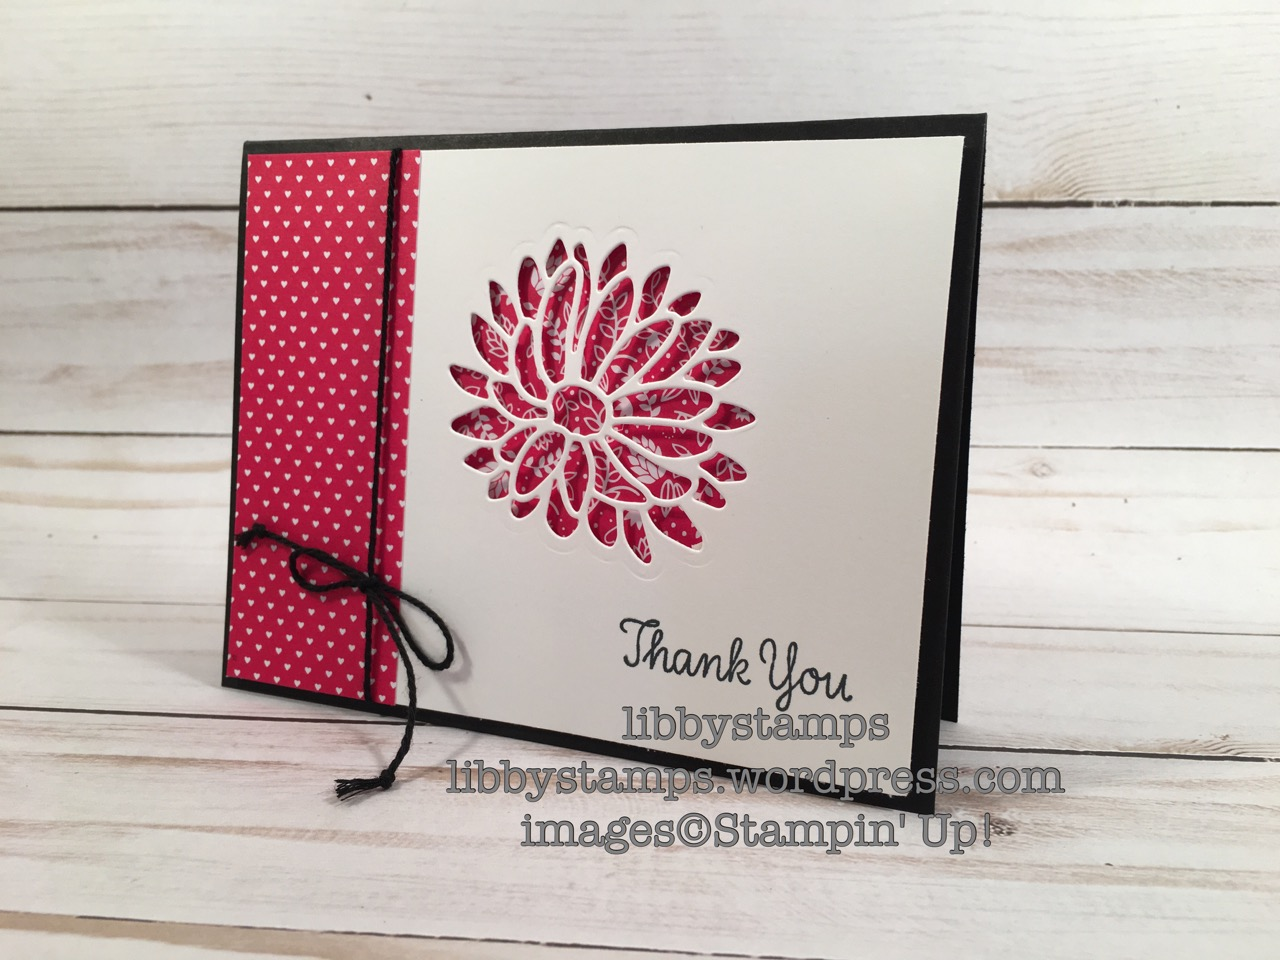 libbystamps, stampin up, Stylish Stems Framelits, thank you, Thankful Thoughts, Sending Love DSP, Card Buffet